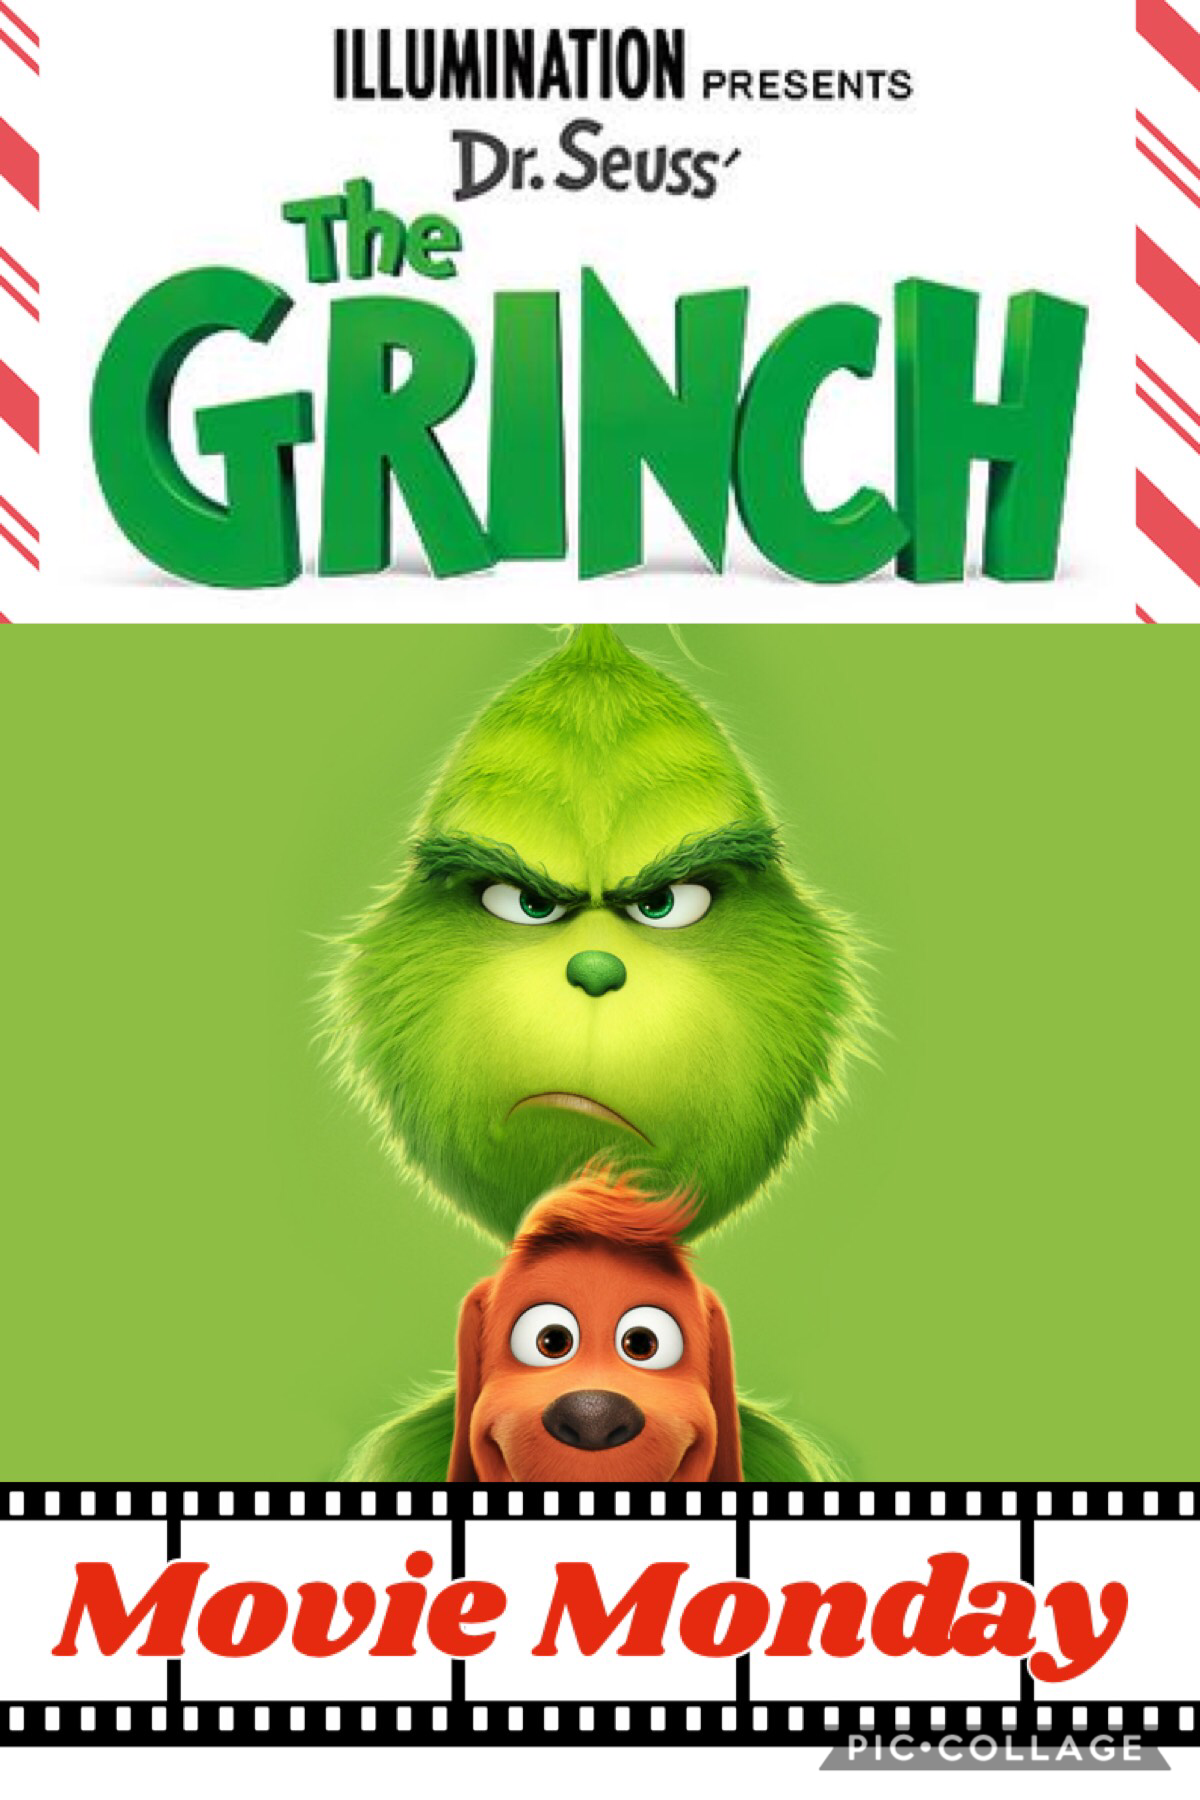 Movie Monday! 🎄 📽 🍿 (Late, but what else is new. 👀 ) The Grinch was great, I recommend it. 💚 🖤 ❤️ It's National Electric Guitar Day! 🎸 Plz check the remixes of this post for a blog/update. ↘️ It's after 2:40am and I have school. 😤 💤 ⏰